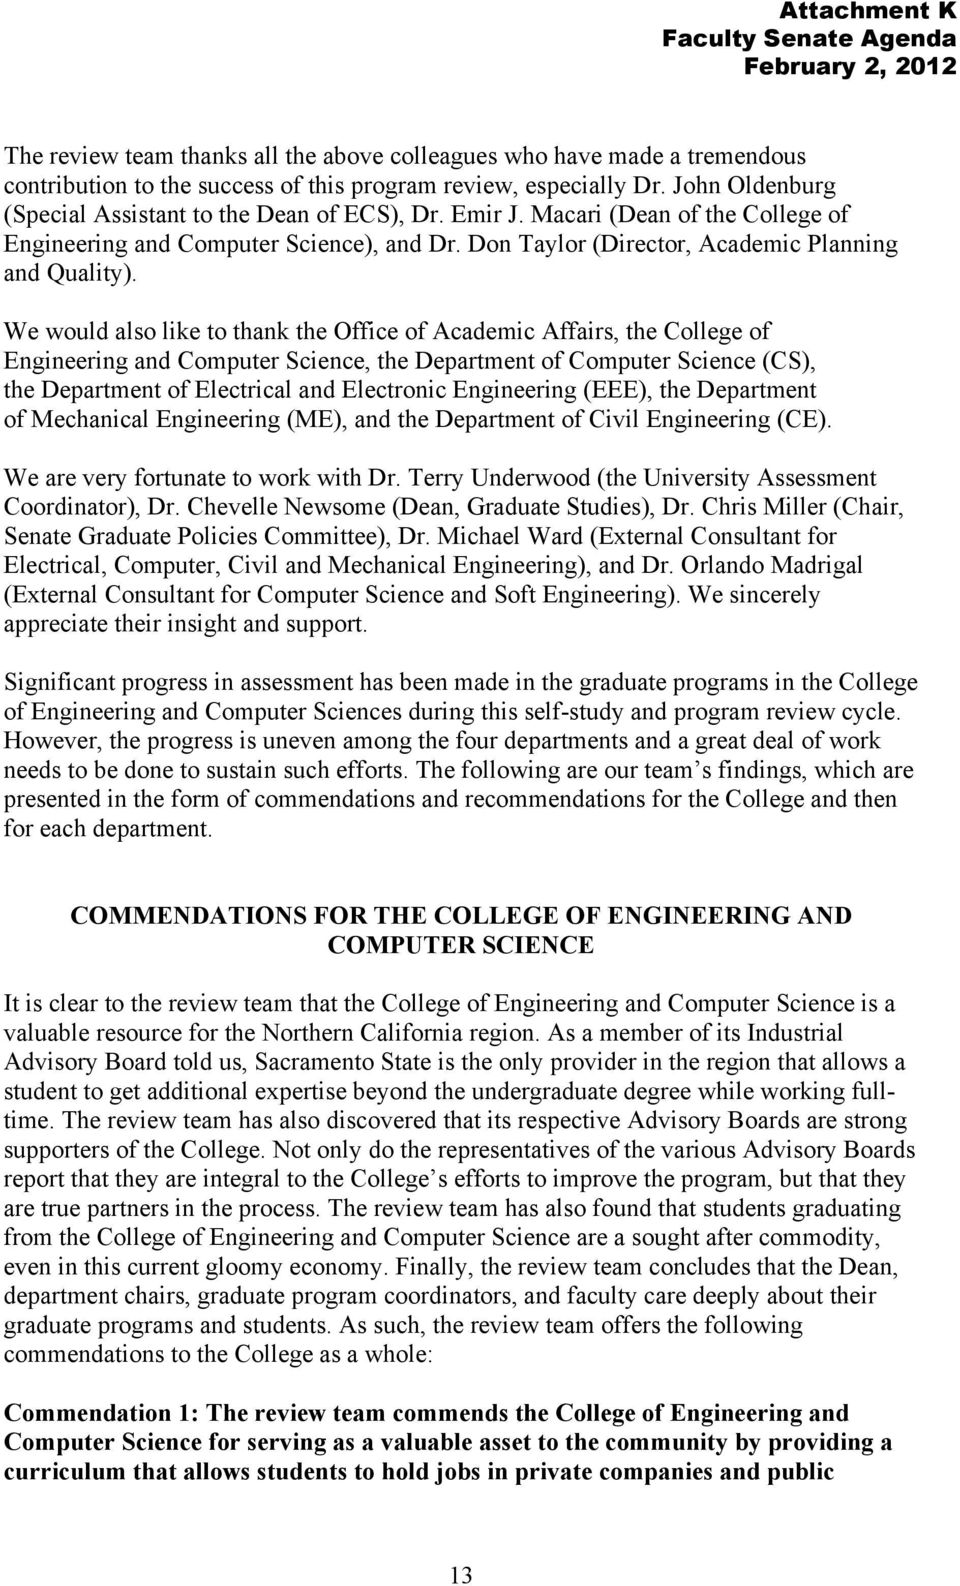 We would also like to thank the Office of Academic Affairs, the College of Engineering and Computer Science, the Department of Computer Science (CS), the Department of Electrical and Electronic